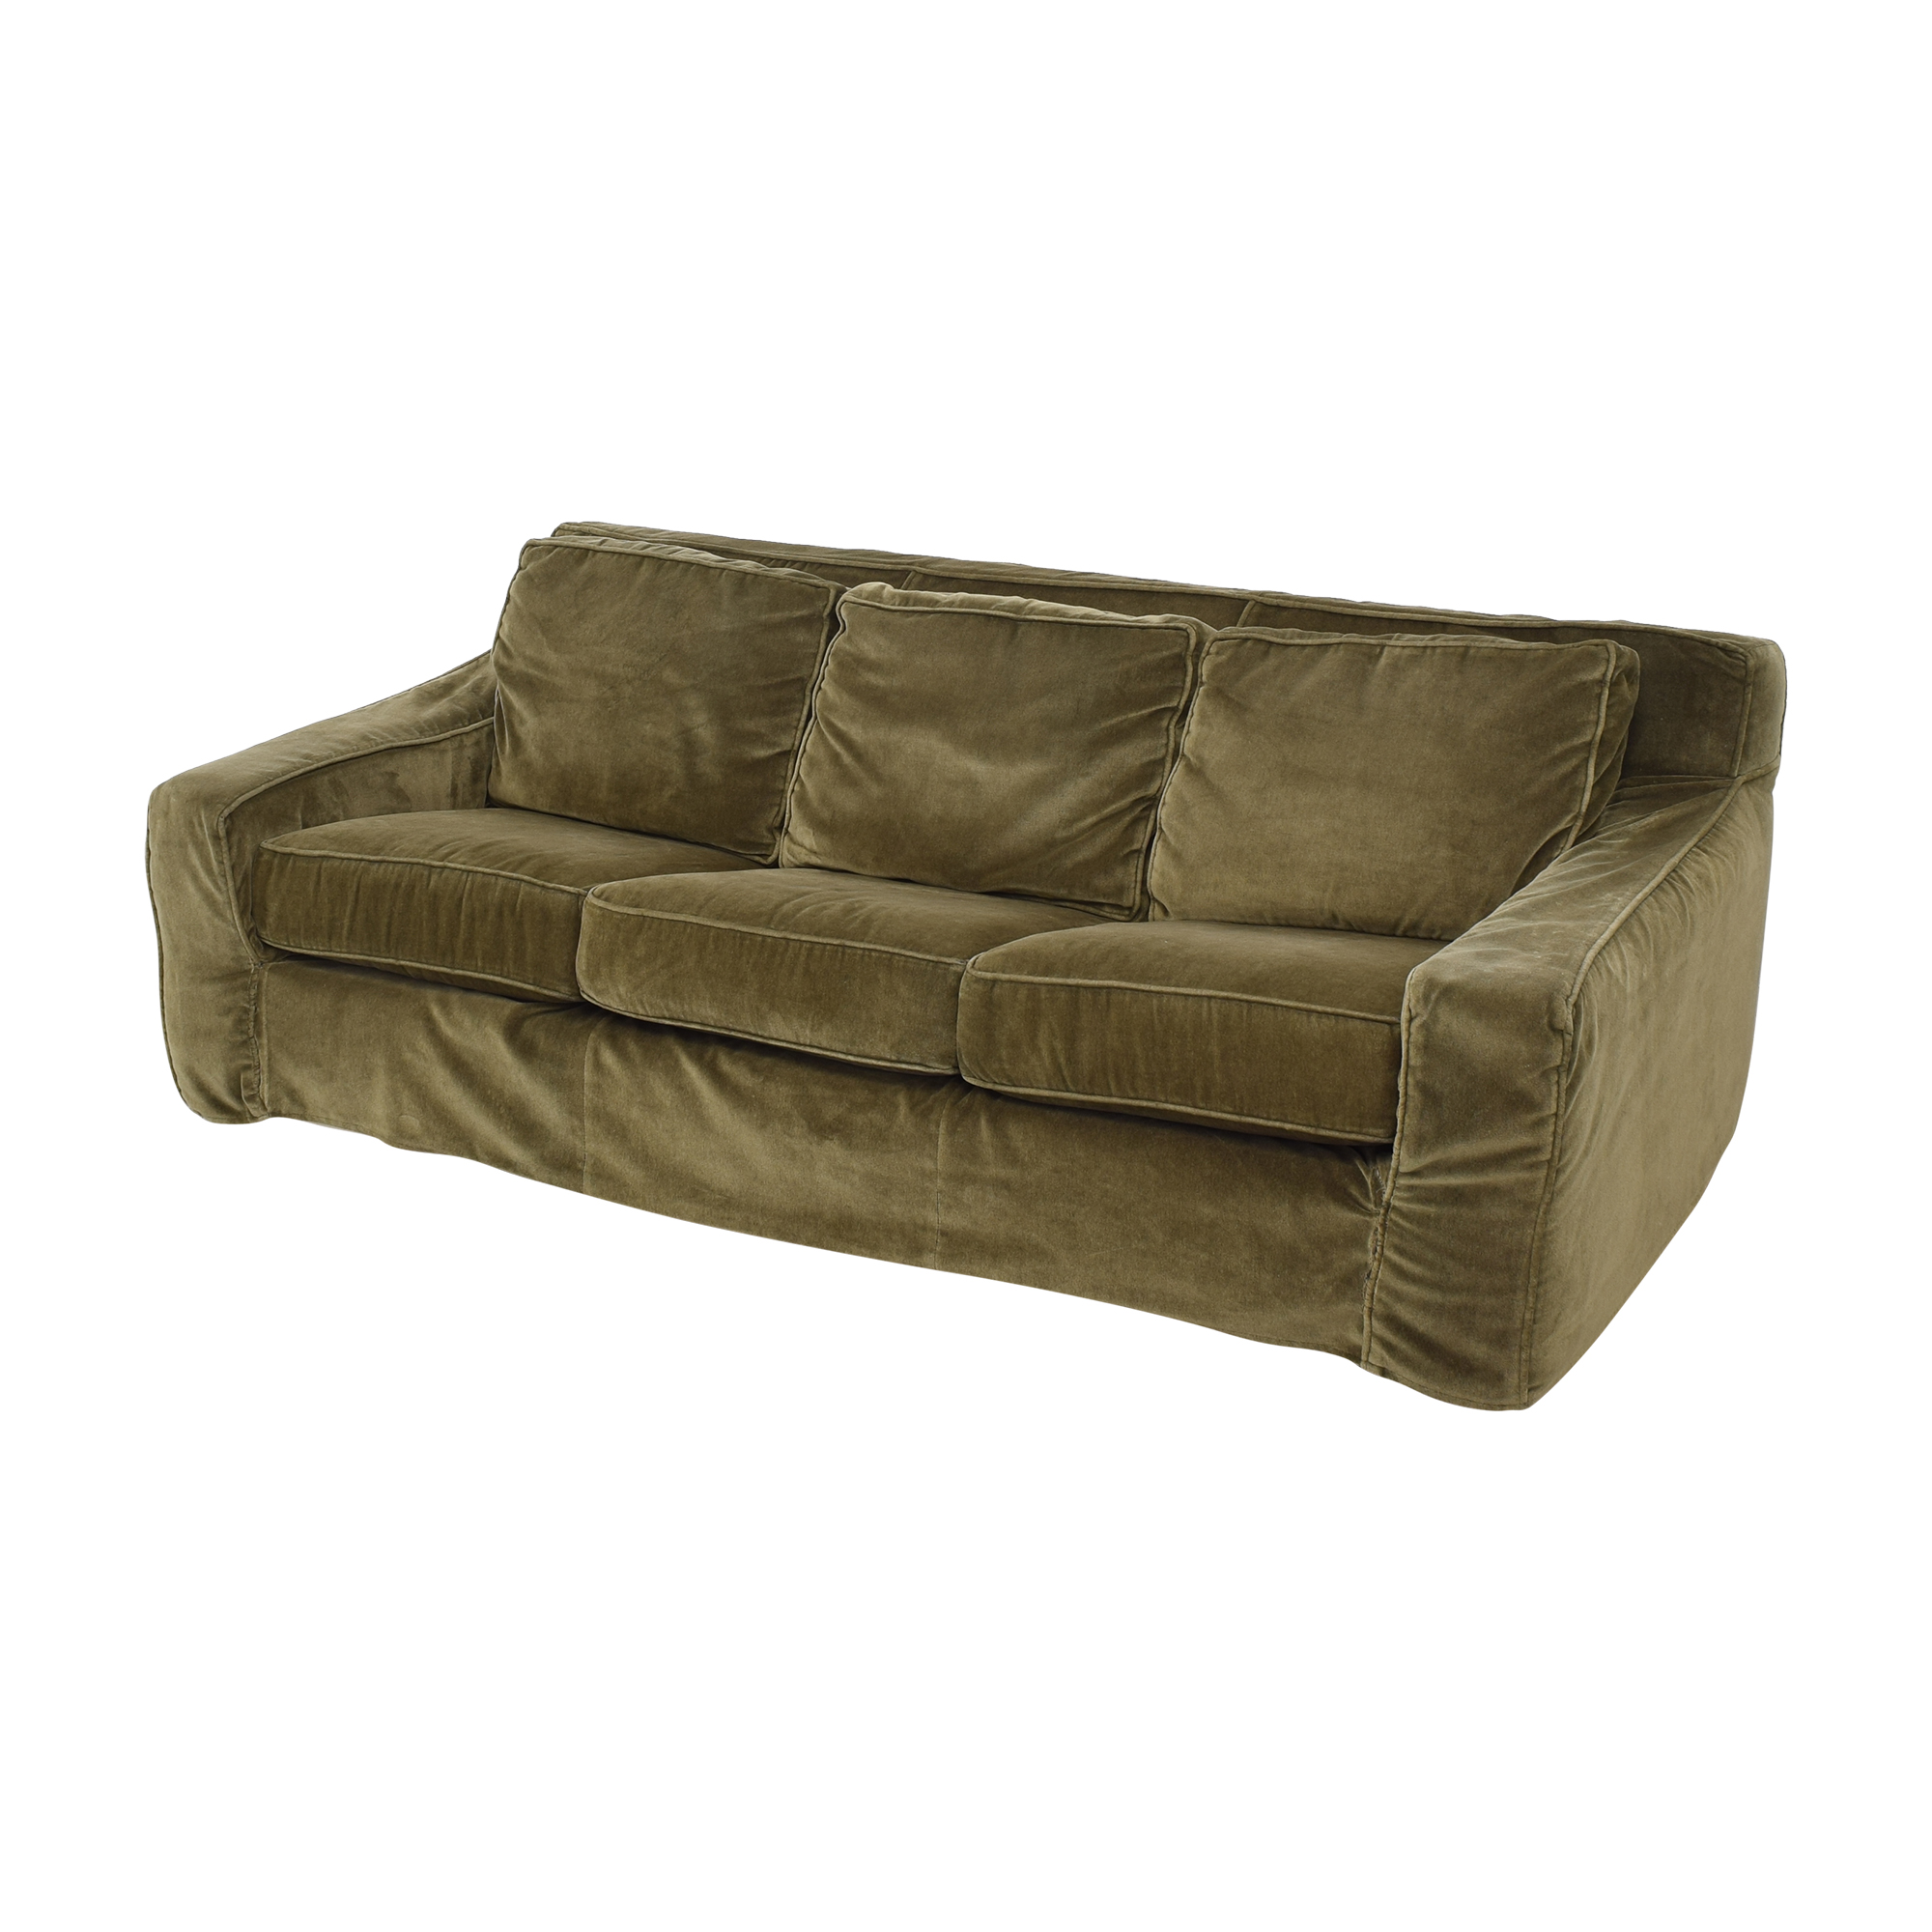 Mitchell Gold + Bob Williams Mitchell Gold Queen Sleeper Sofa used